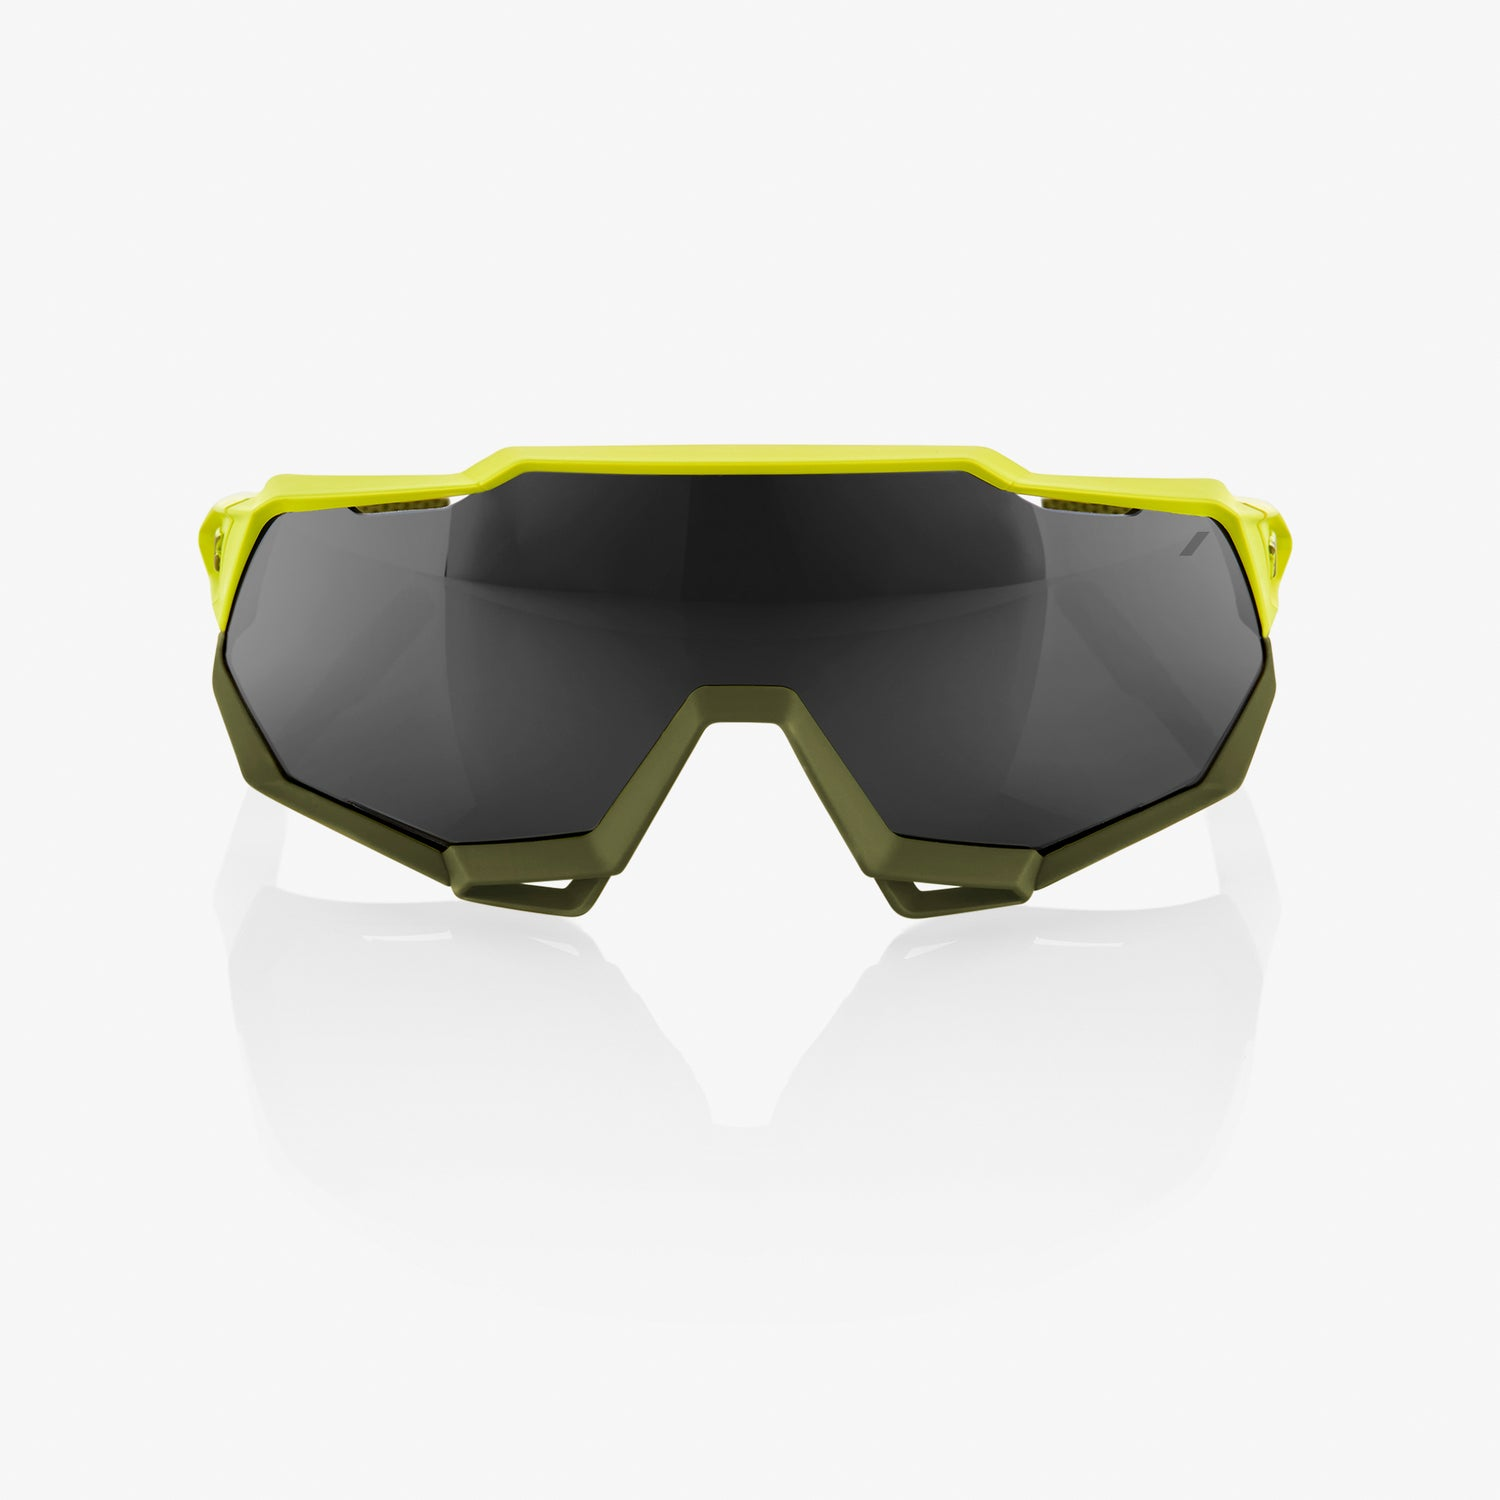 SPEEDTRAP - Soft Tact Banana - Black Mirror Lens